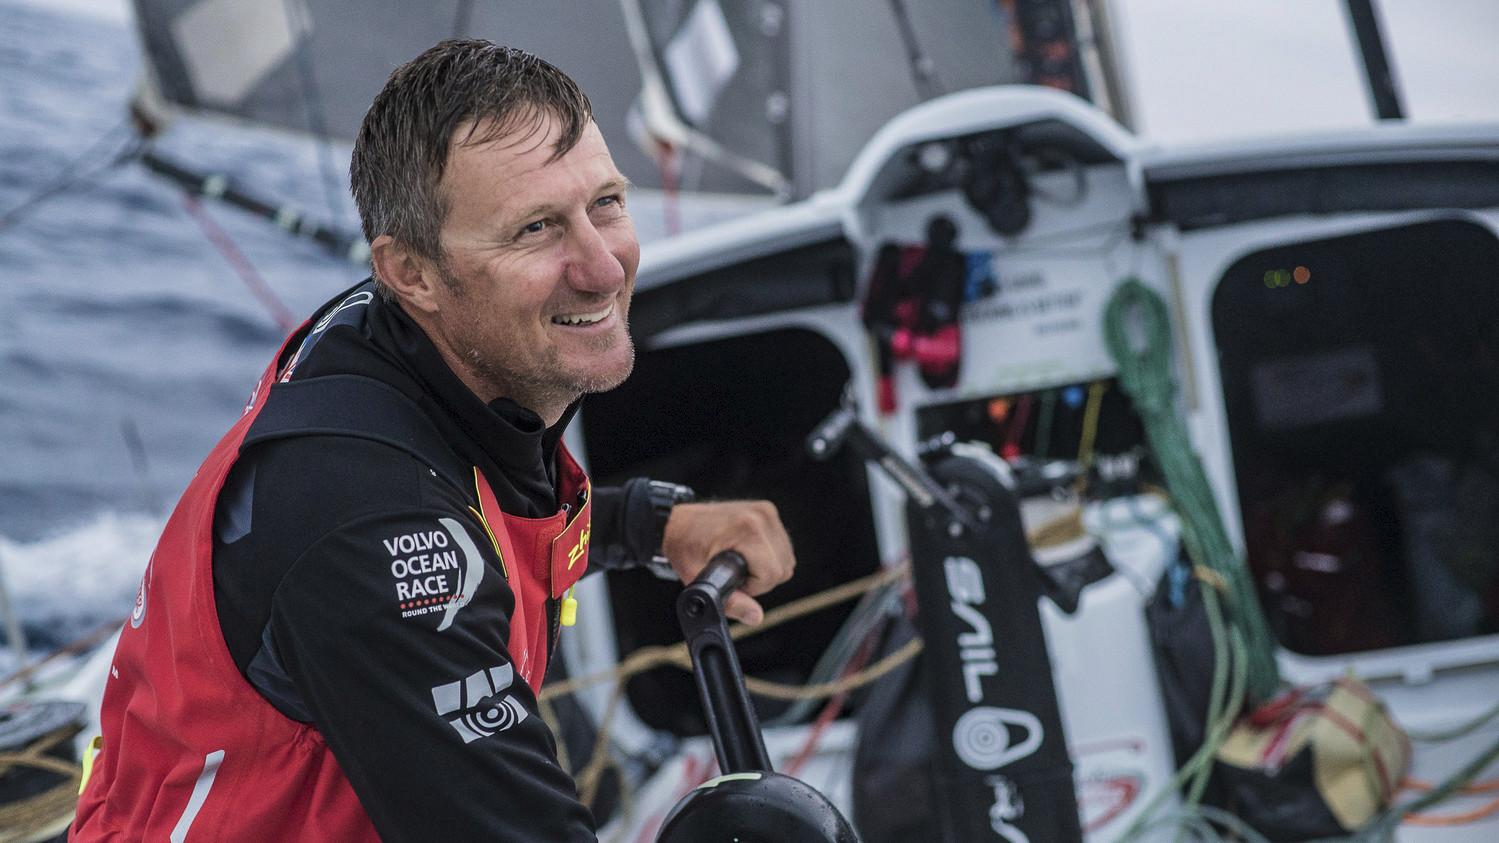 Yachtsman John Fisher is feared dead after falling overboard in a round-the-world race